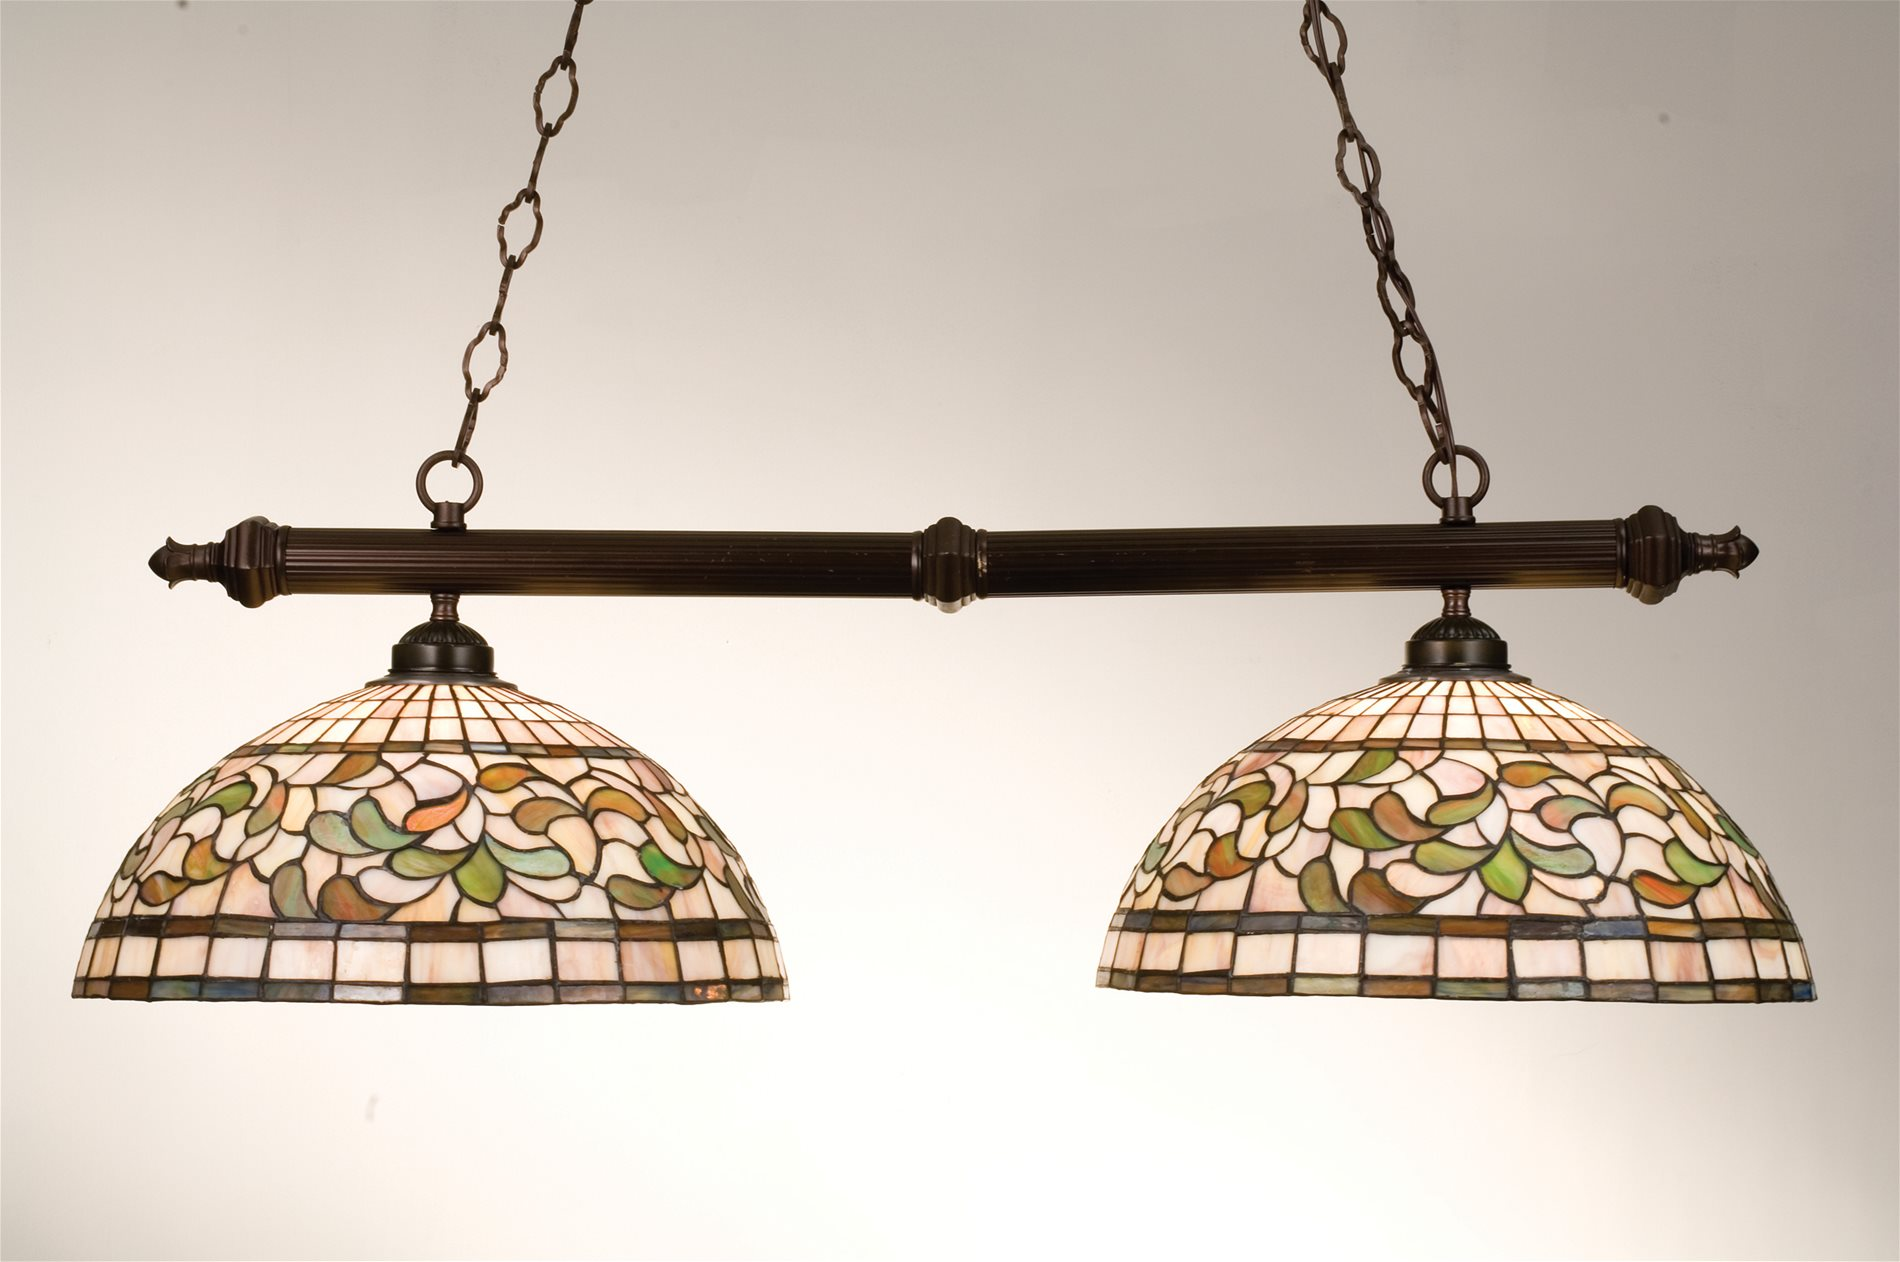 Meyda tiffany 18842 turning leaf traditional kitchen for Traditional kitchen pendant lights